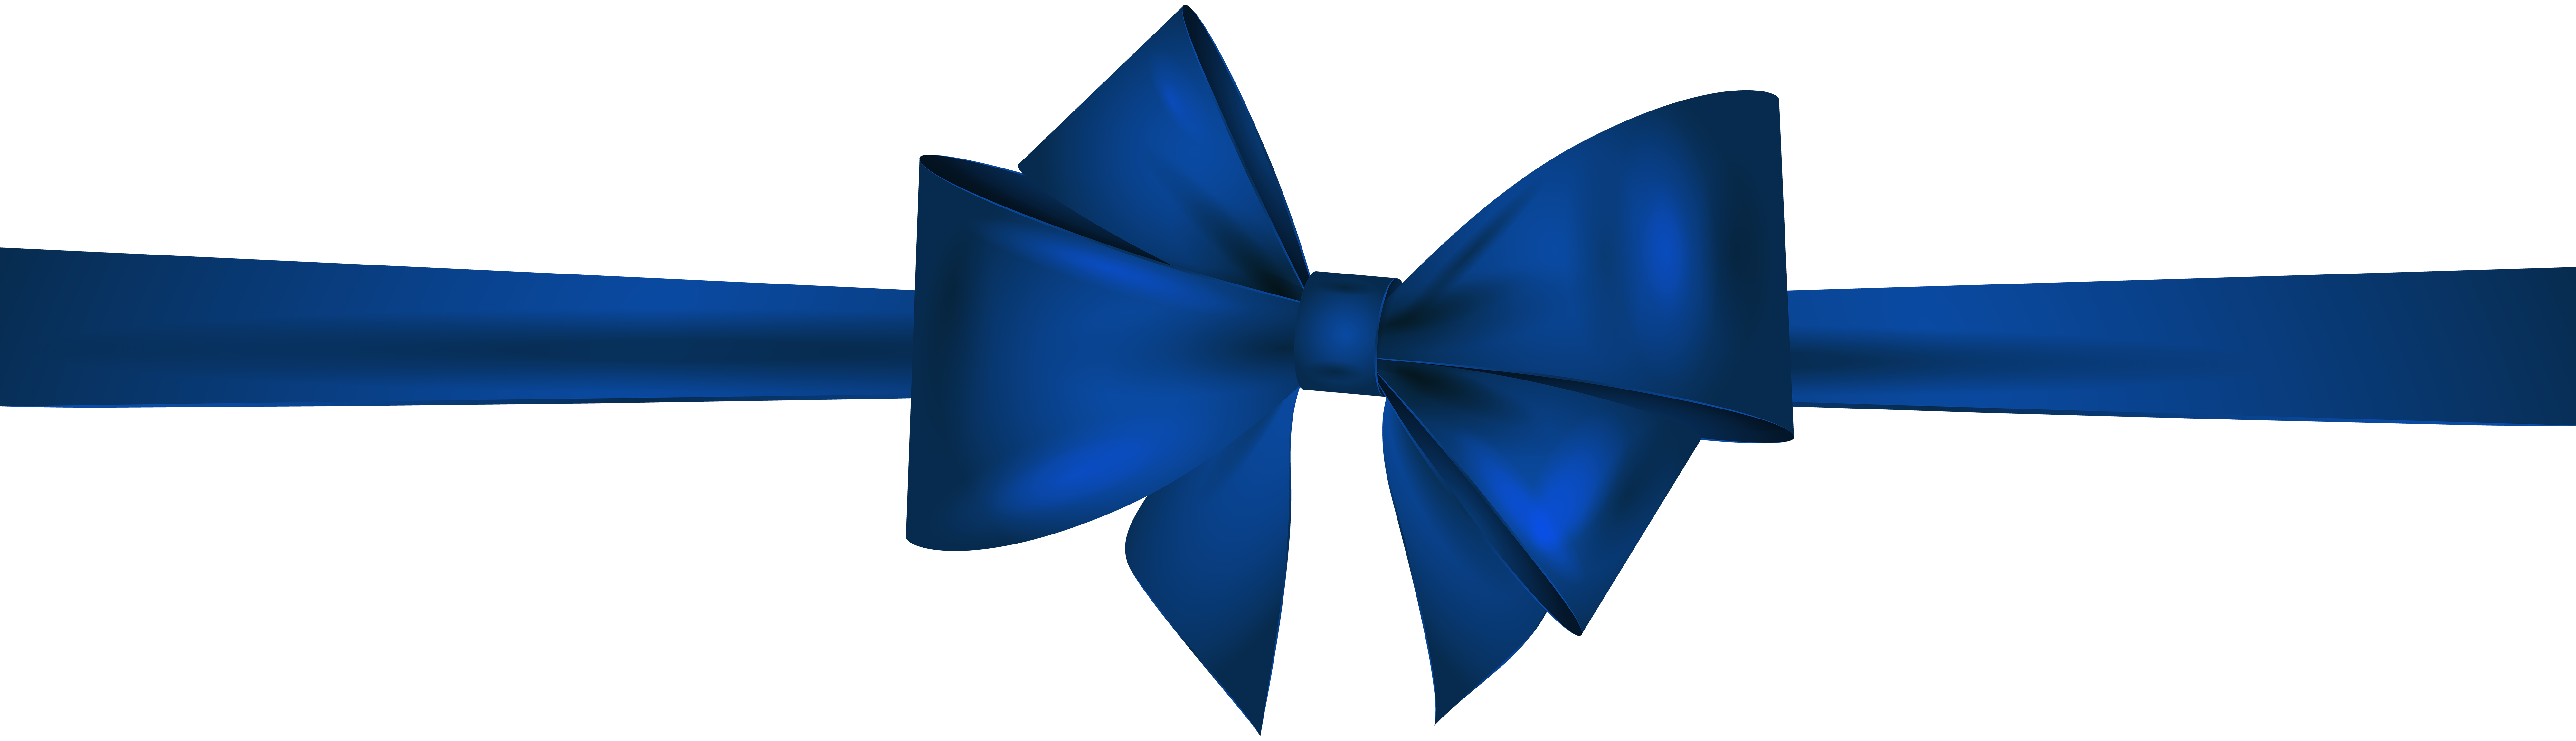 Blue bow png. Clip art gallery yopriceville